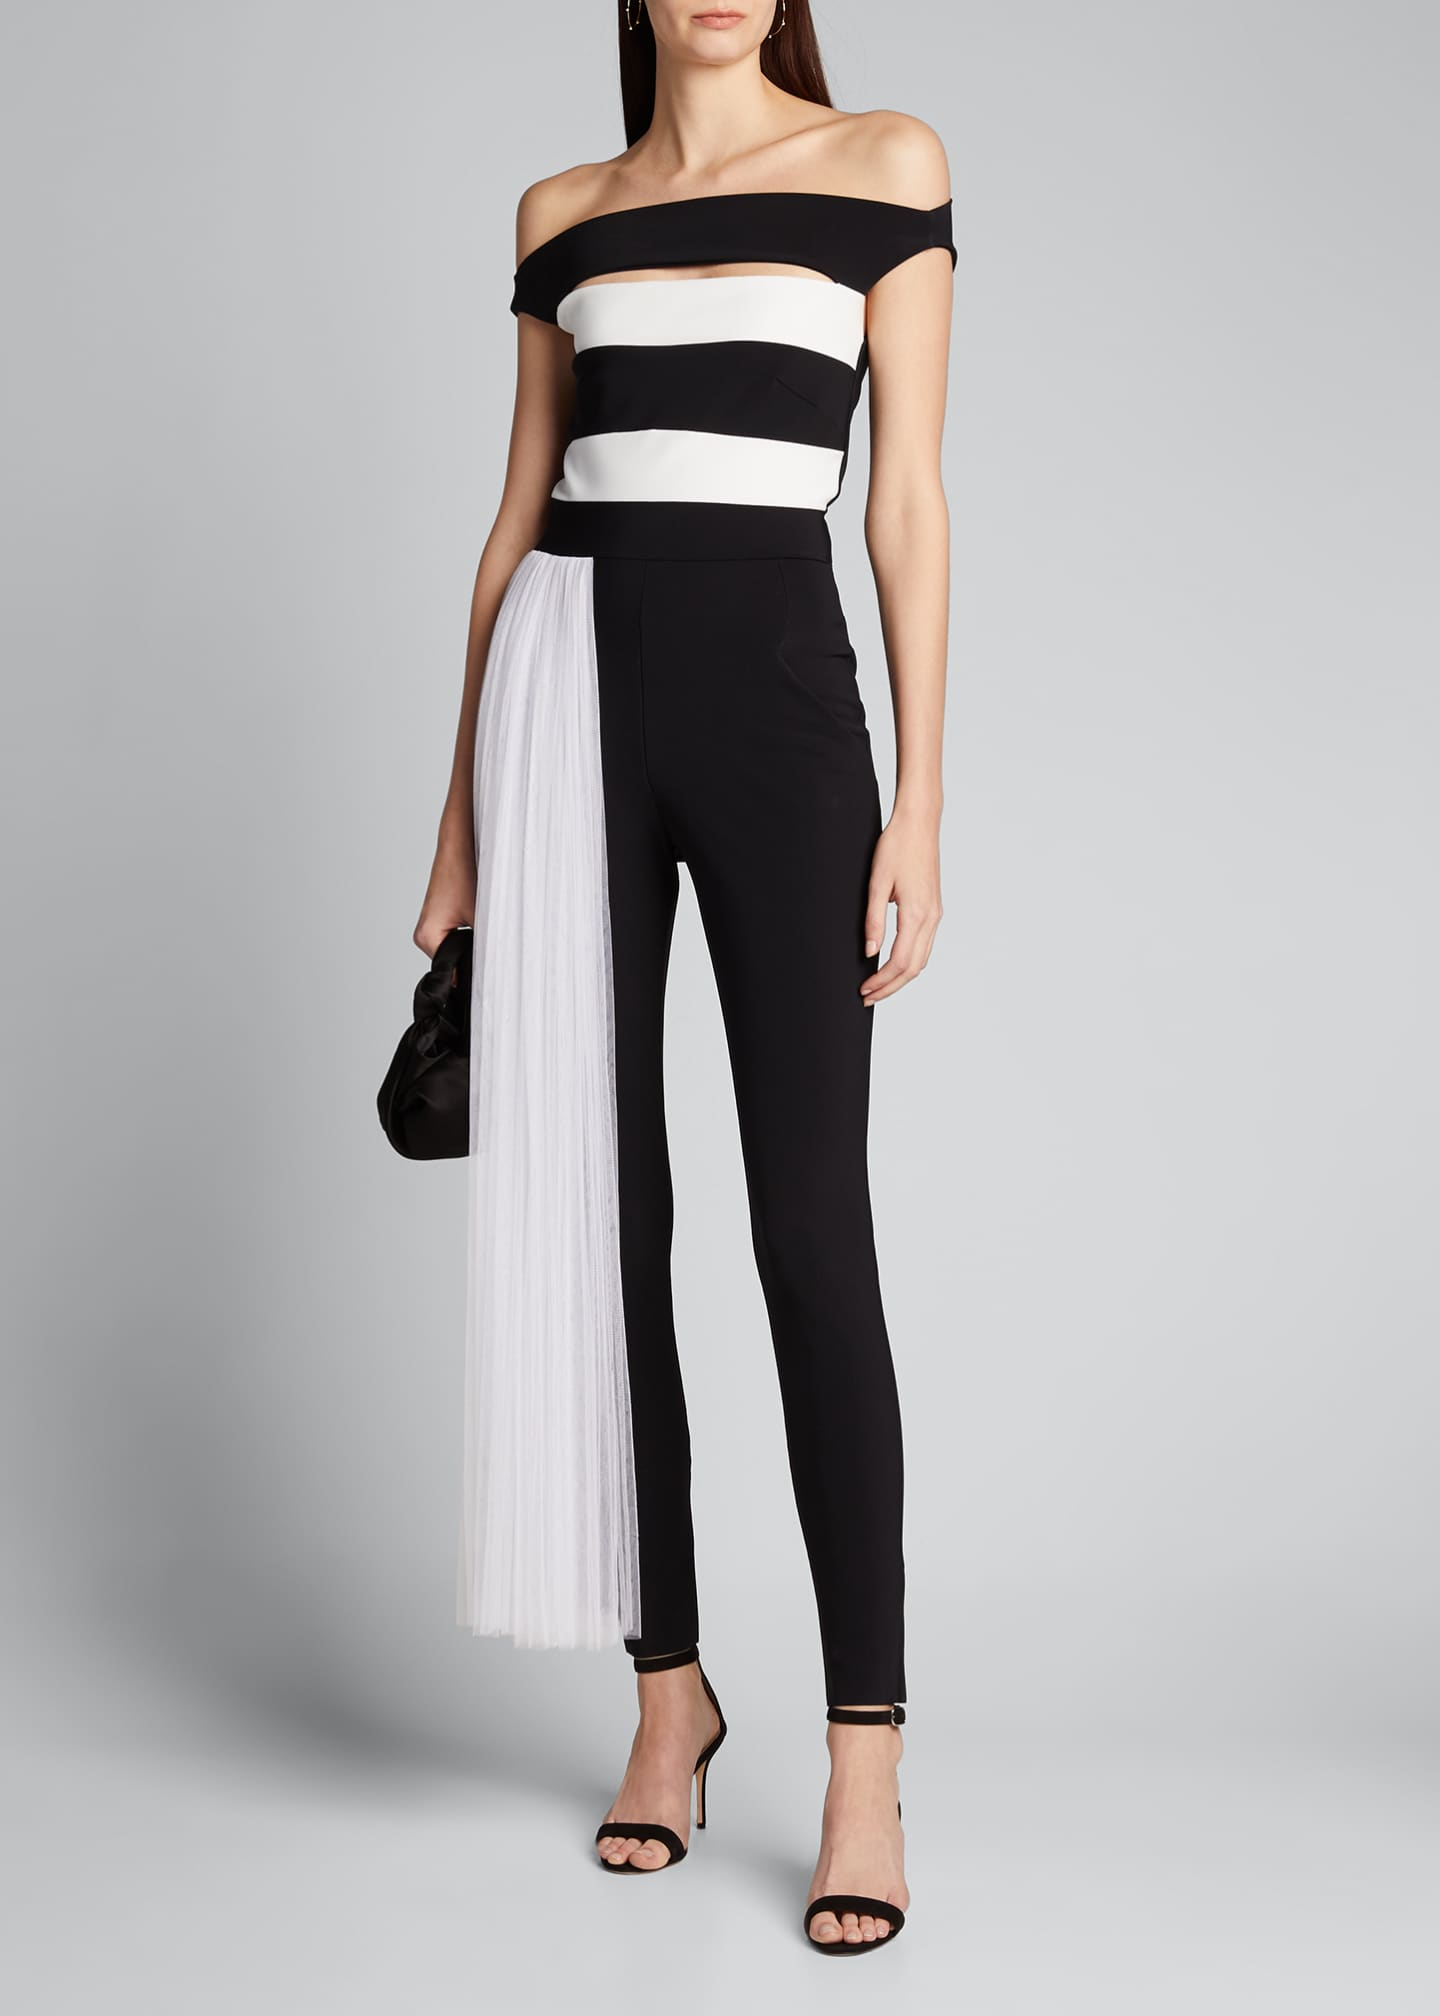 Image 1 of 5: Mar Two-Tone Off-the-Shoulder Jumpsuit w/ Illusion Waist Train